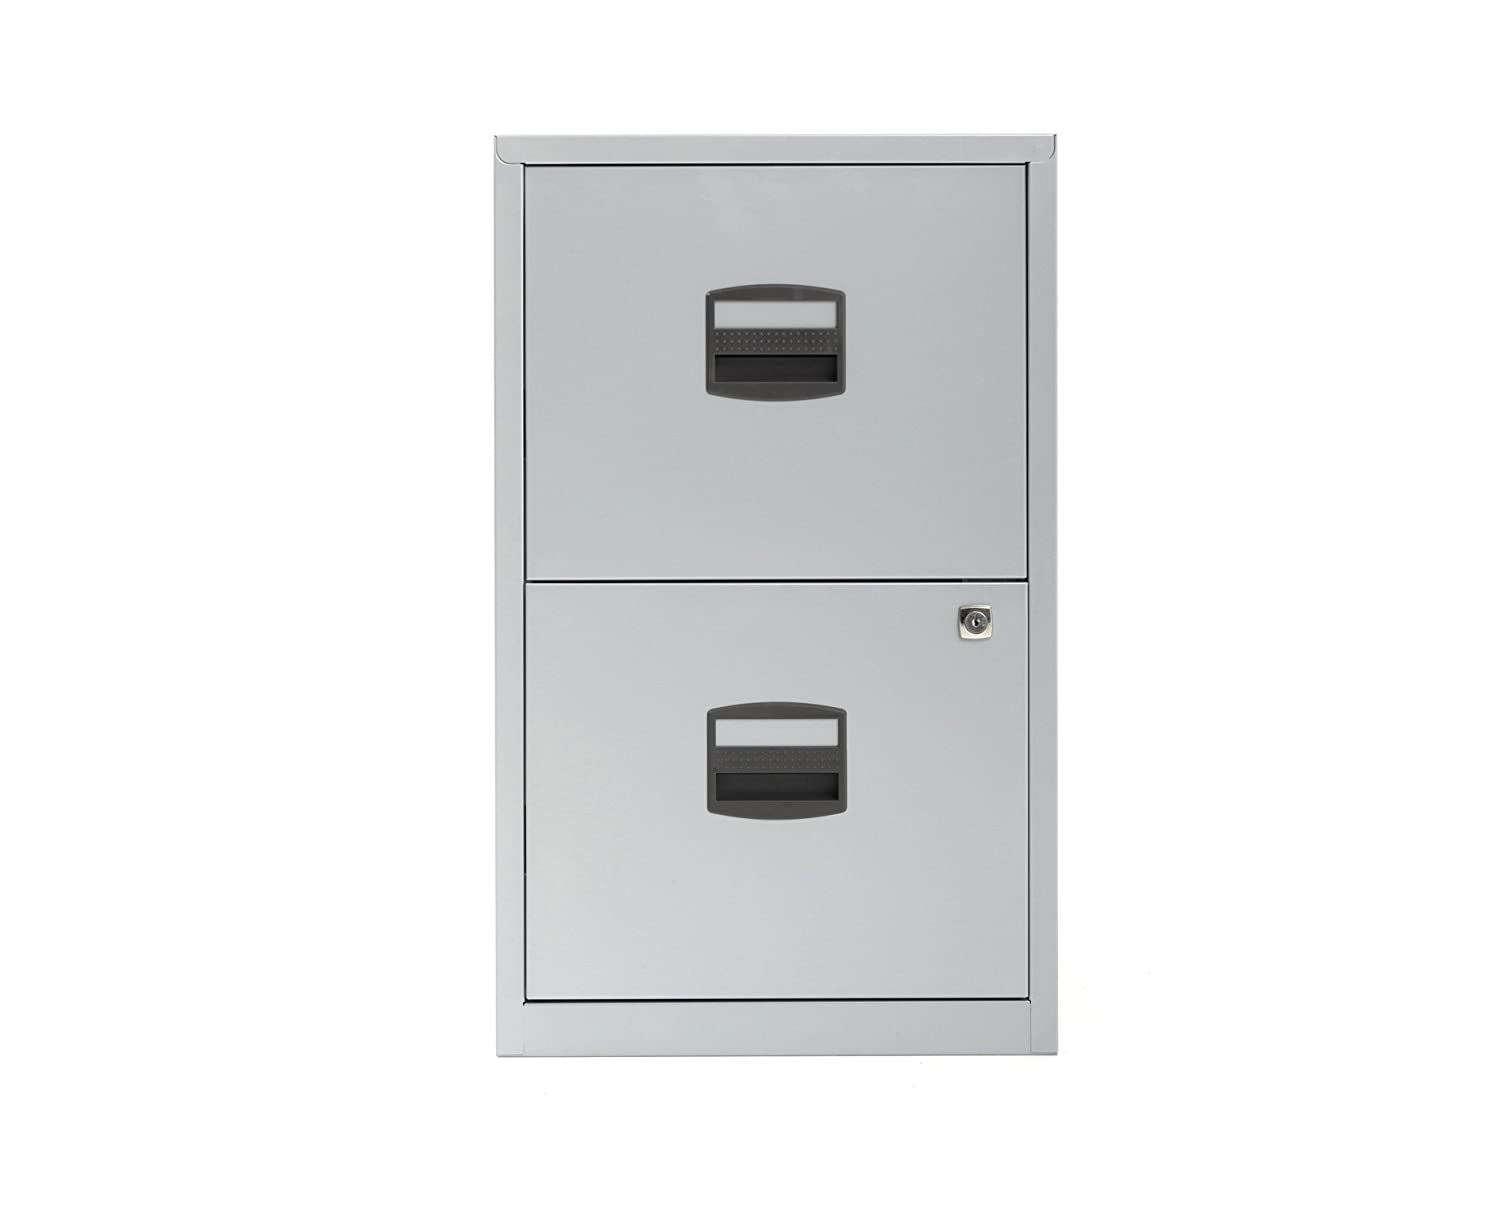 b71f4503161 Bisley Metal Filing Cabinet 2 Drawer A4 H670xW410xD400mm - Color  Silver   Amazon.co.uk  Office Products